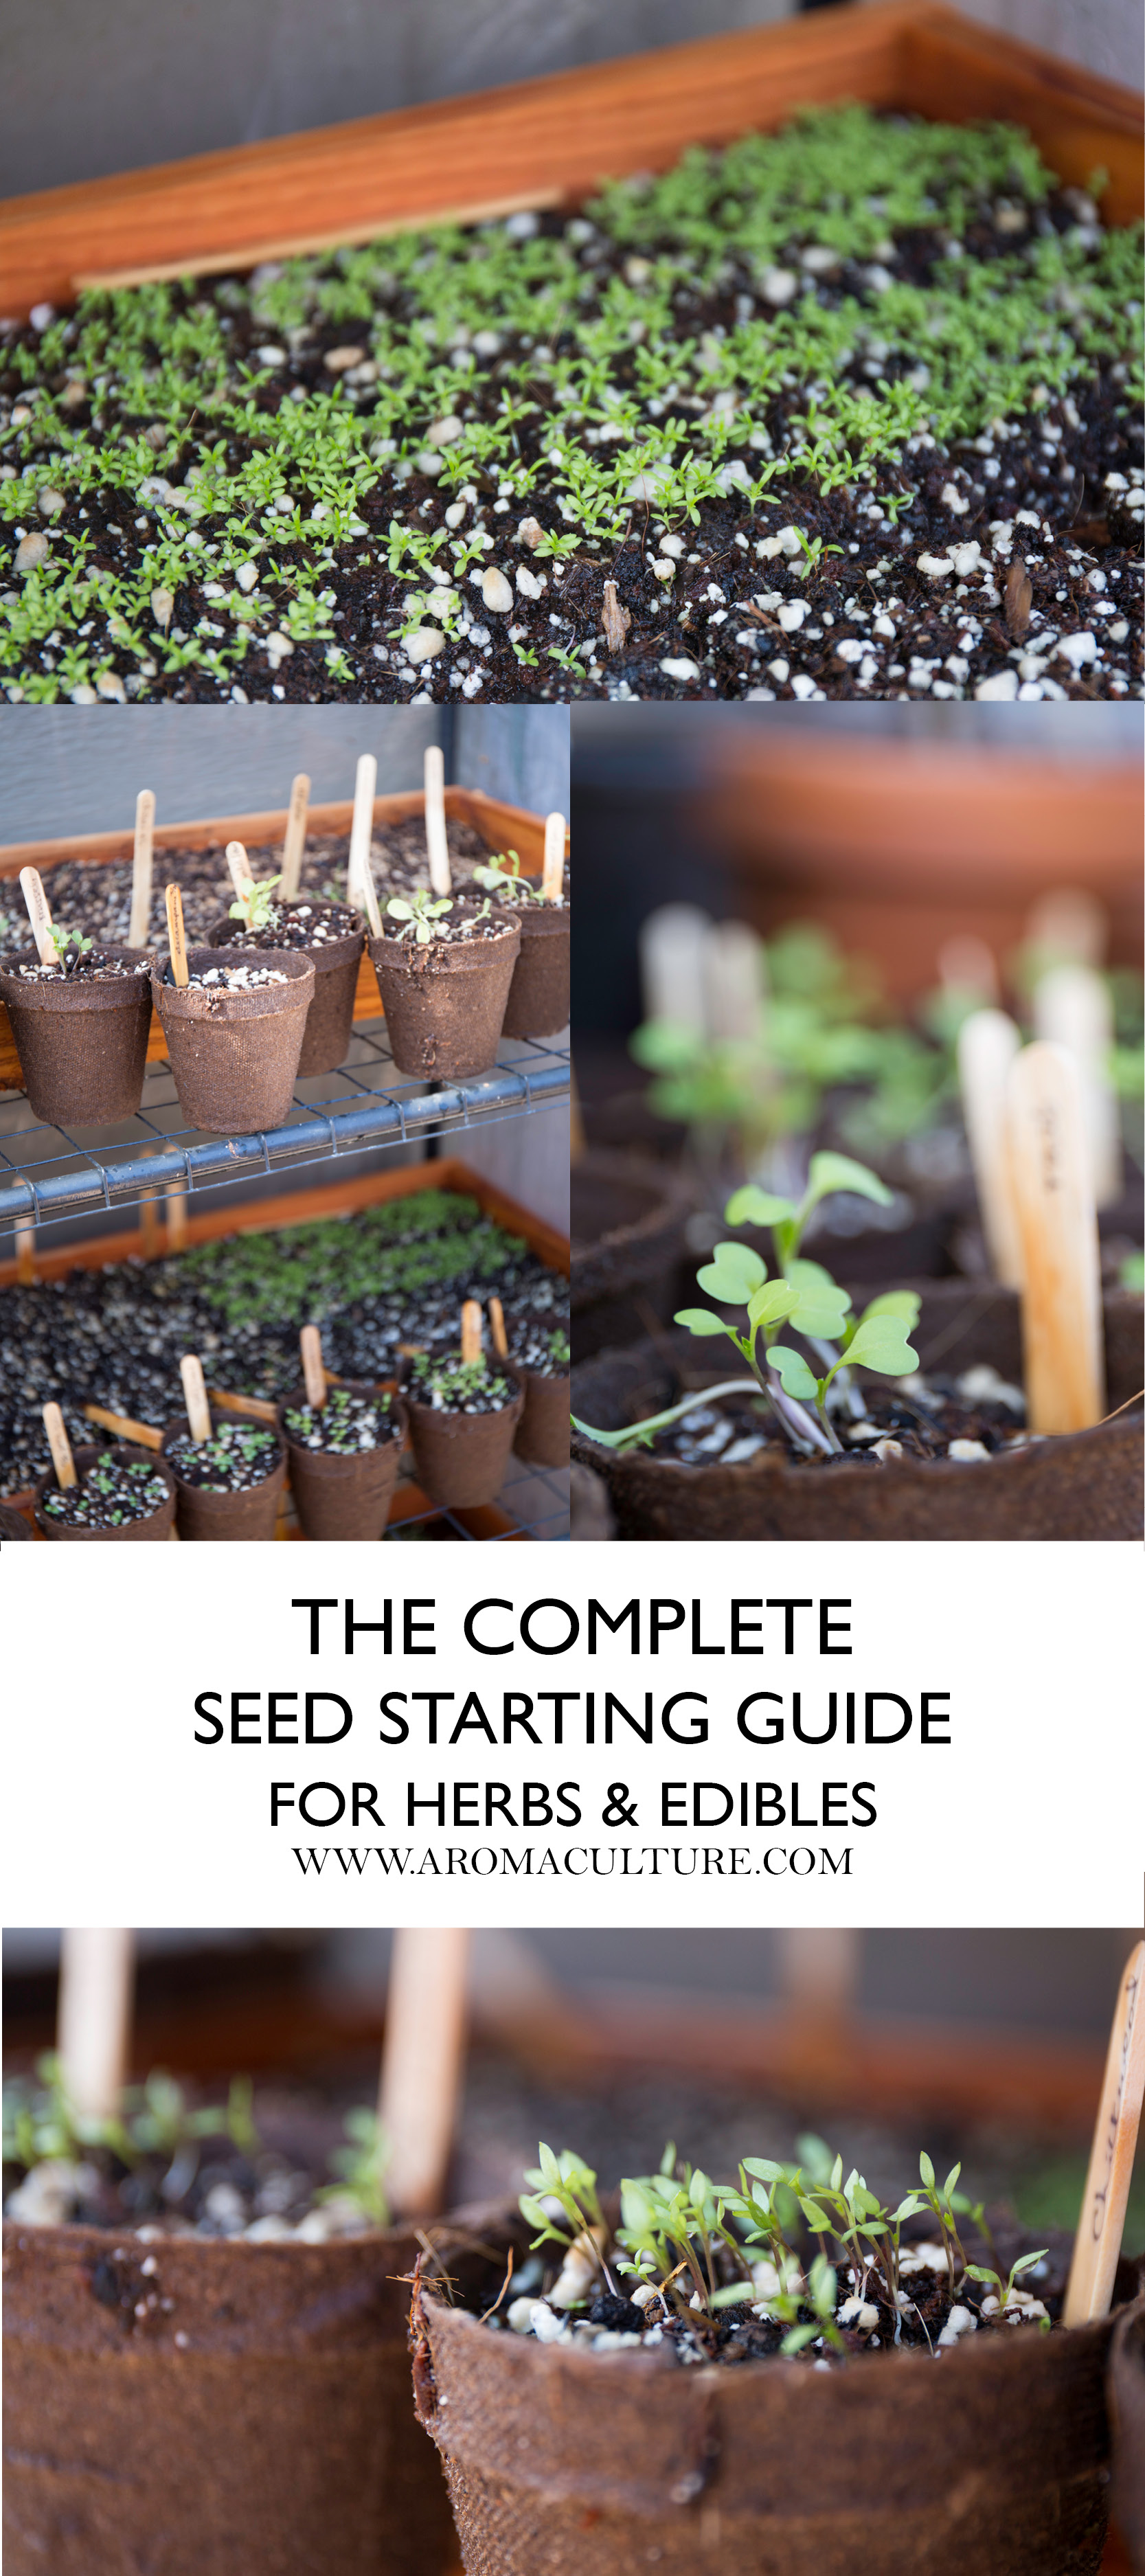 COMPLETE SEED STARTING GUIDE FOR HERBS AND EDIBLES AROMACULTURE.jpg